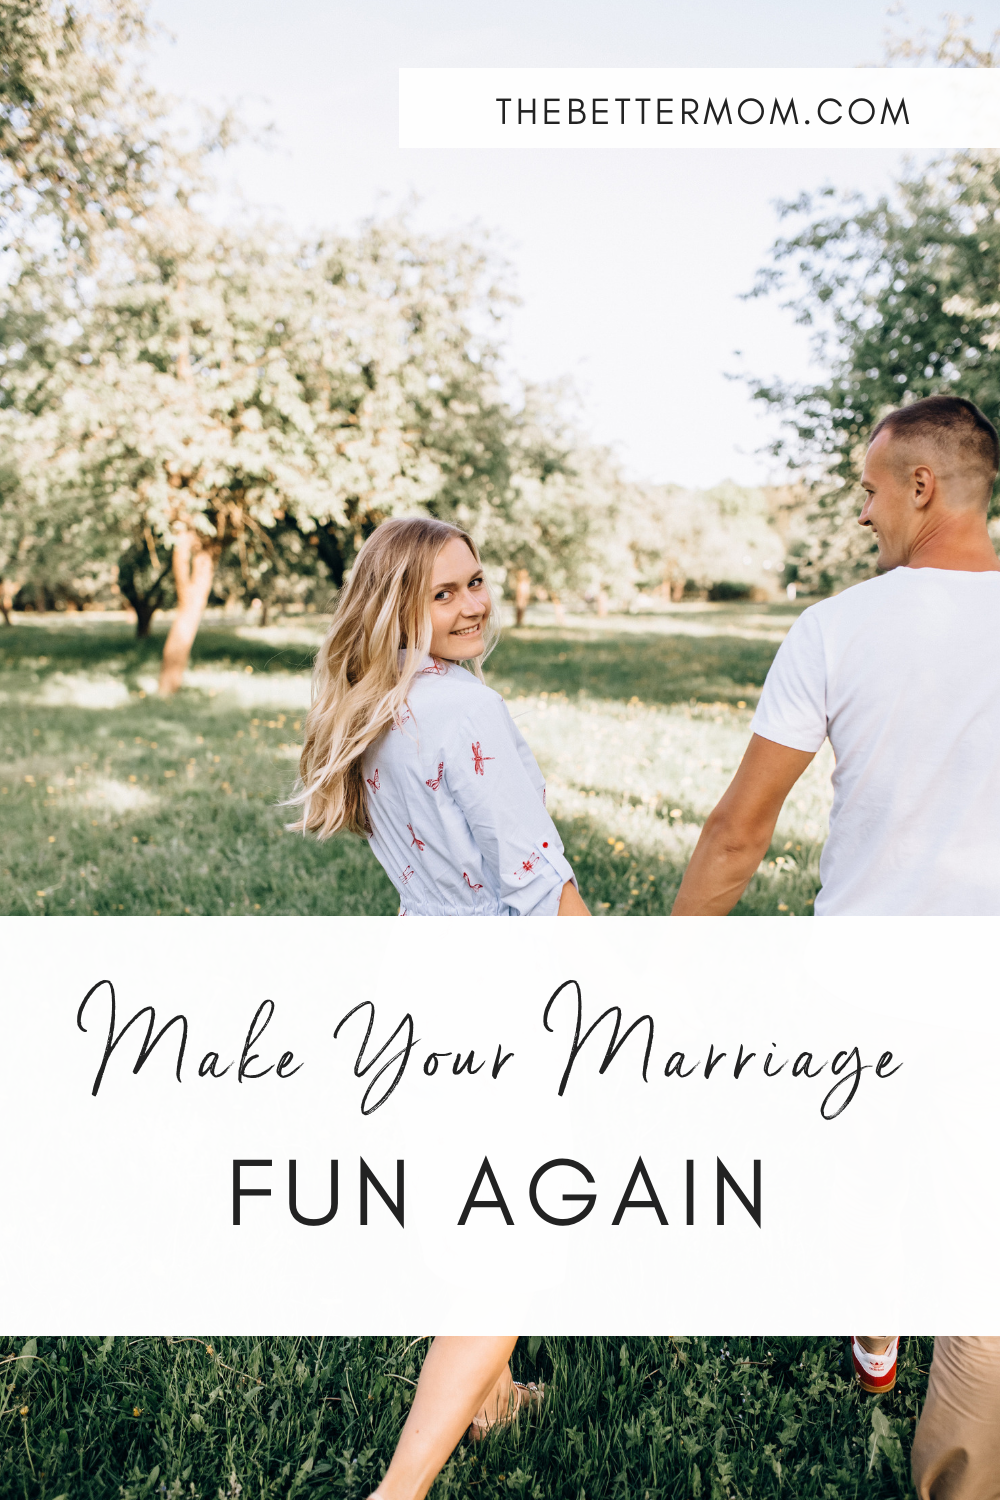 Do you enjoy your marriage? Sometimes this very holy, very good work we are doing with our spouse can lack... fun! Bring back the joy of just being together with these great ideas for connection.